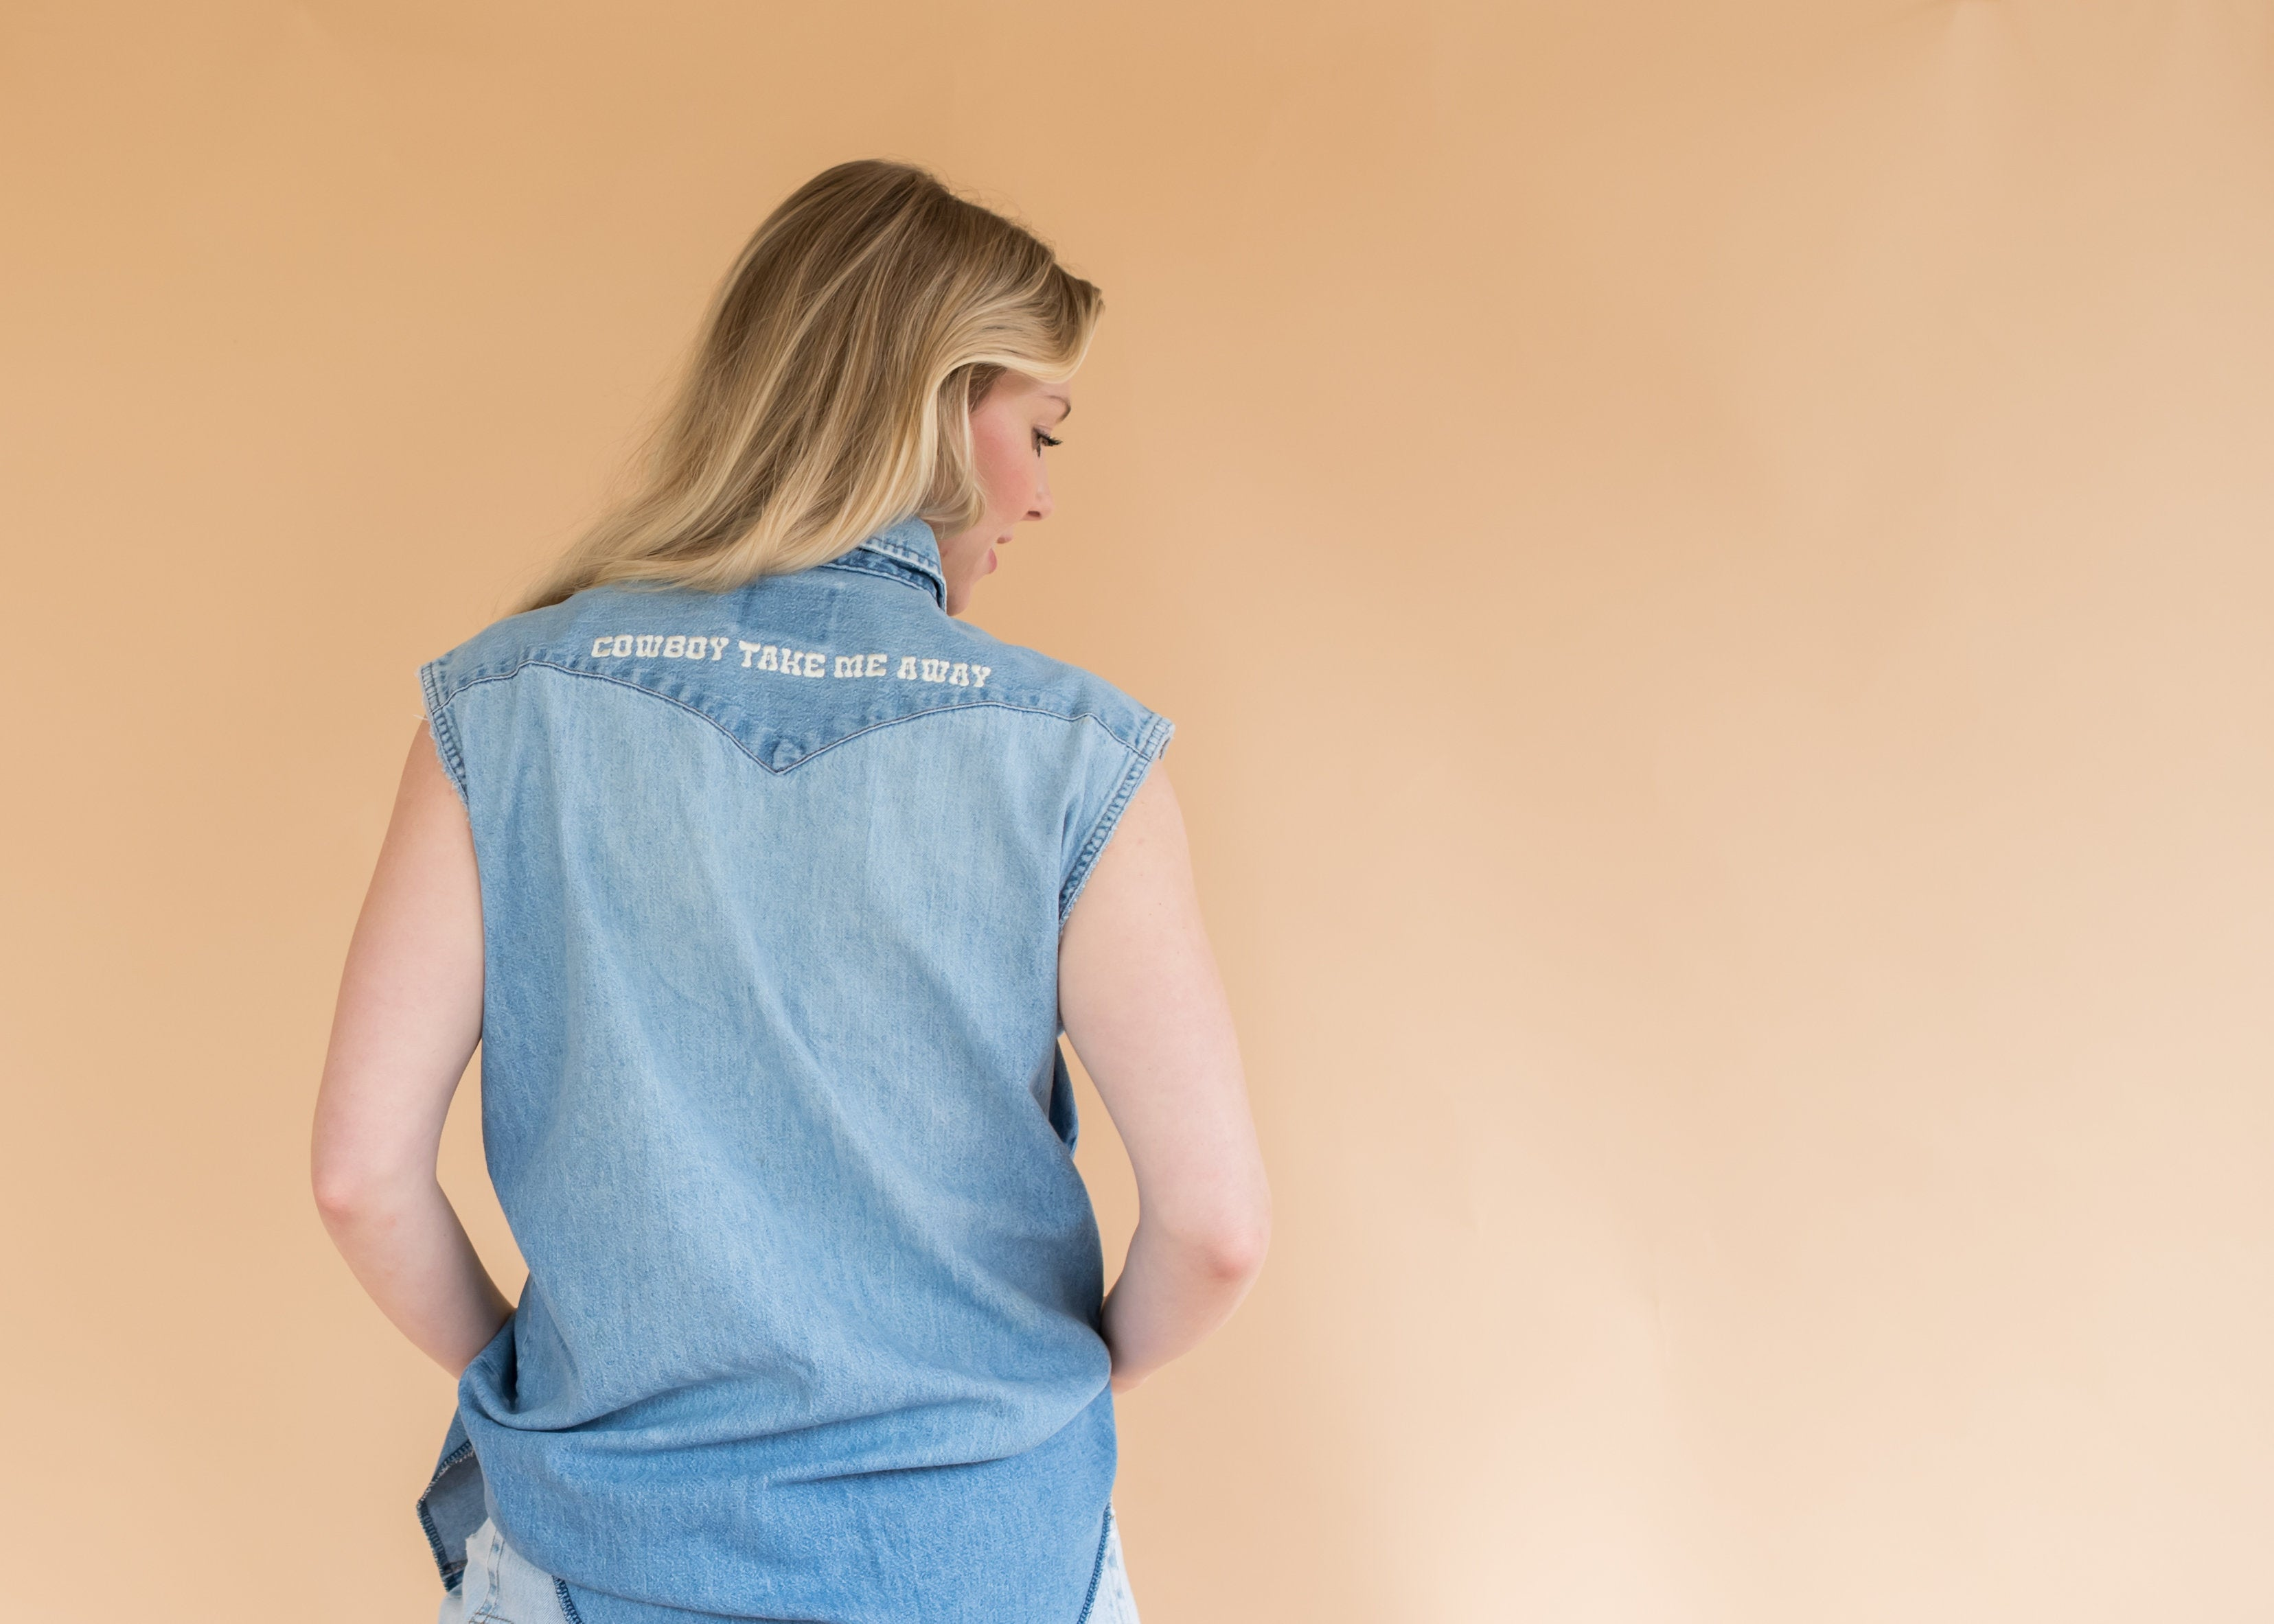 """Cowboy Take Me Away"" Denim Pearl Snap Vest - Women's Vintage Denim Shirt Vest with Pearl Snap Buttons"